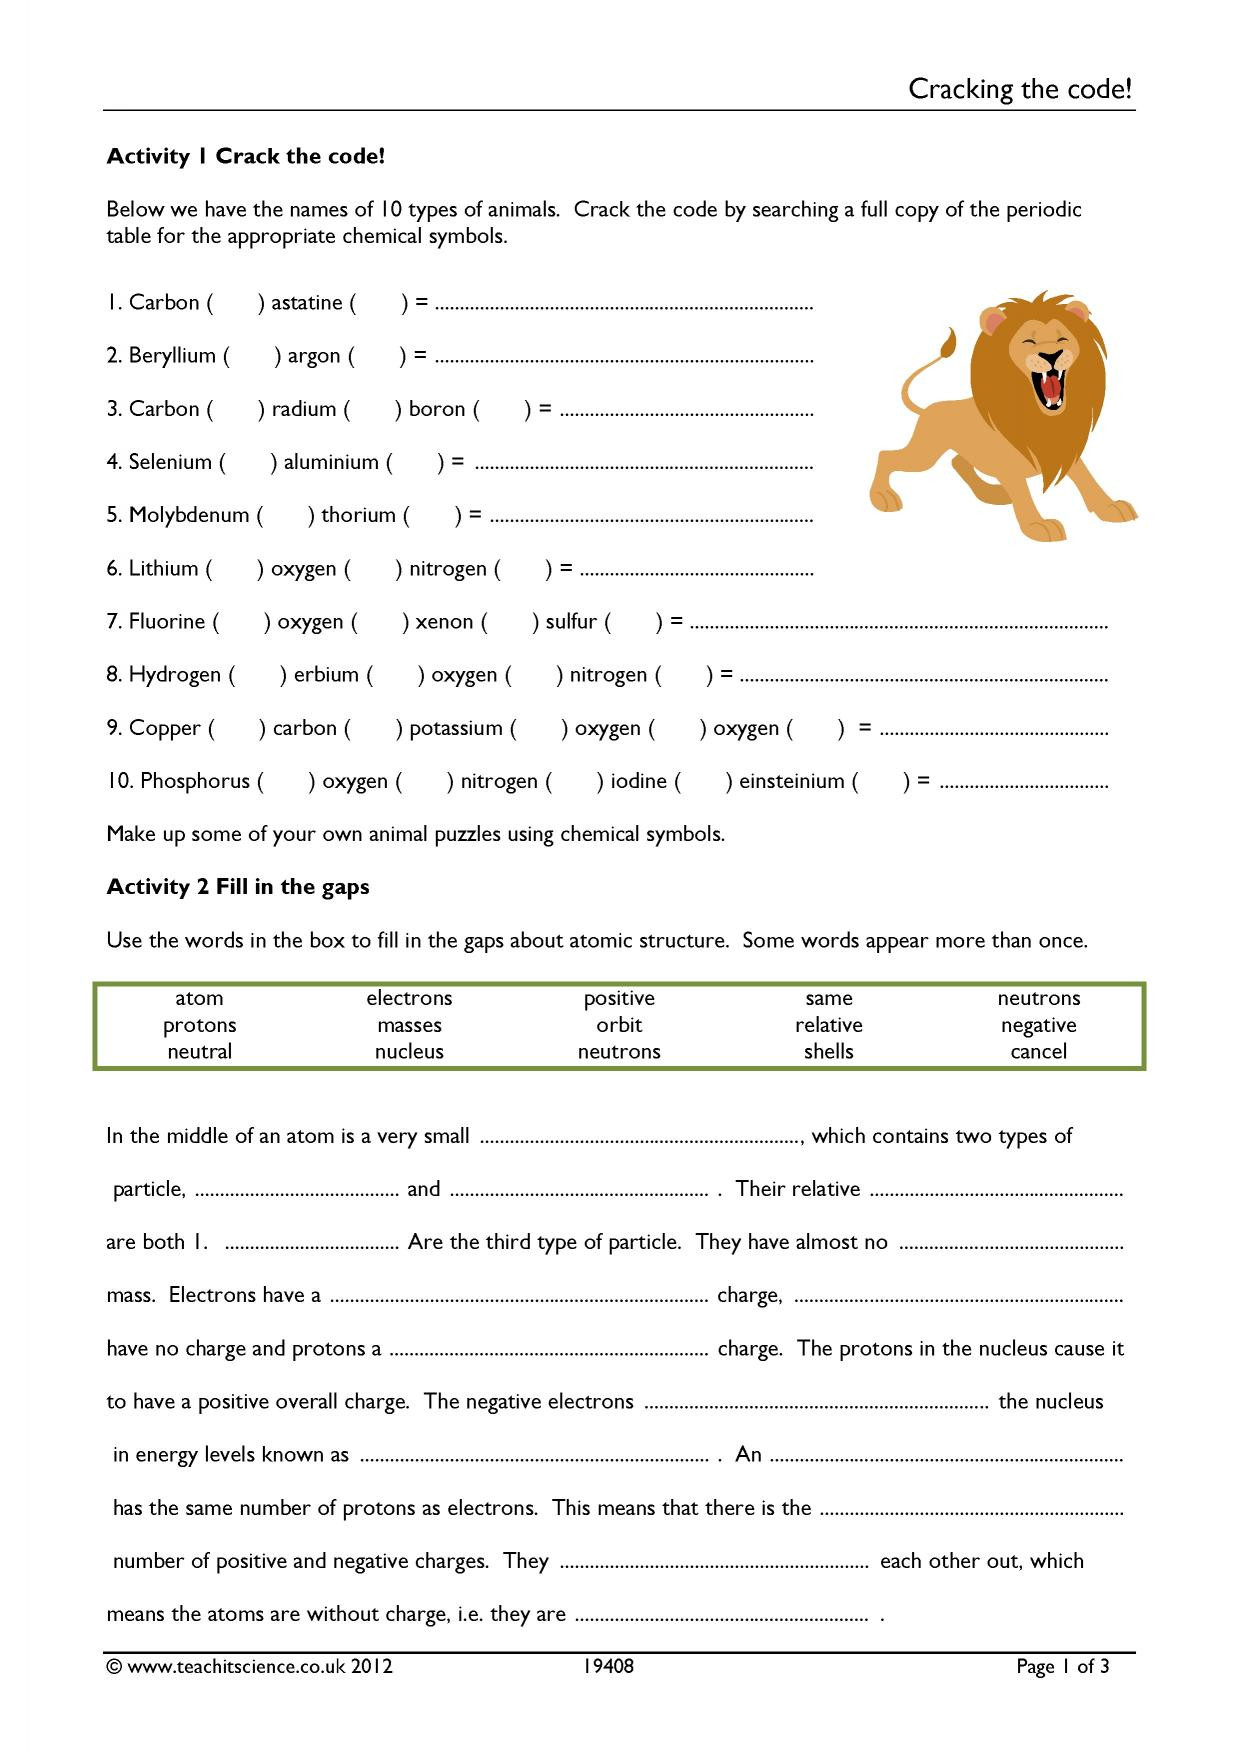 Crack the Code Math Worksheets Cracking the Code